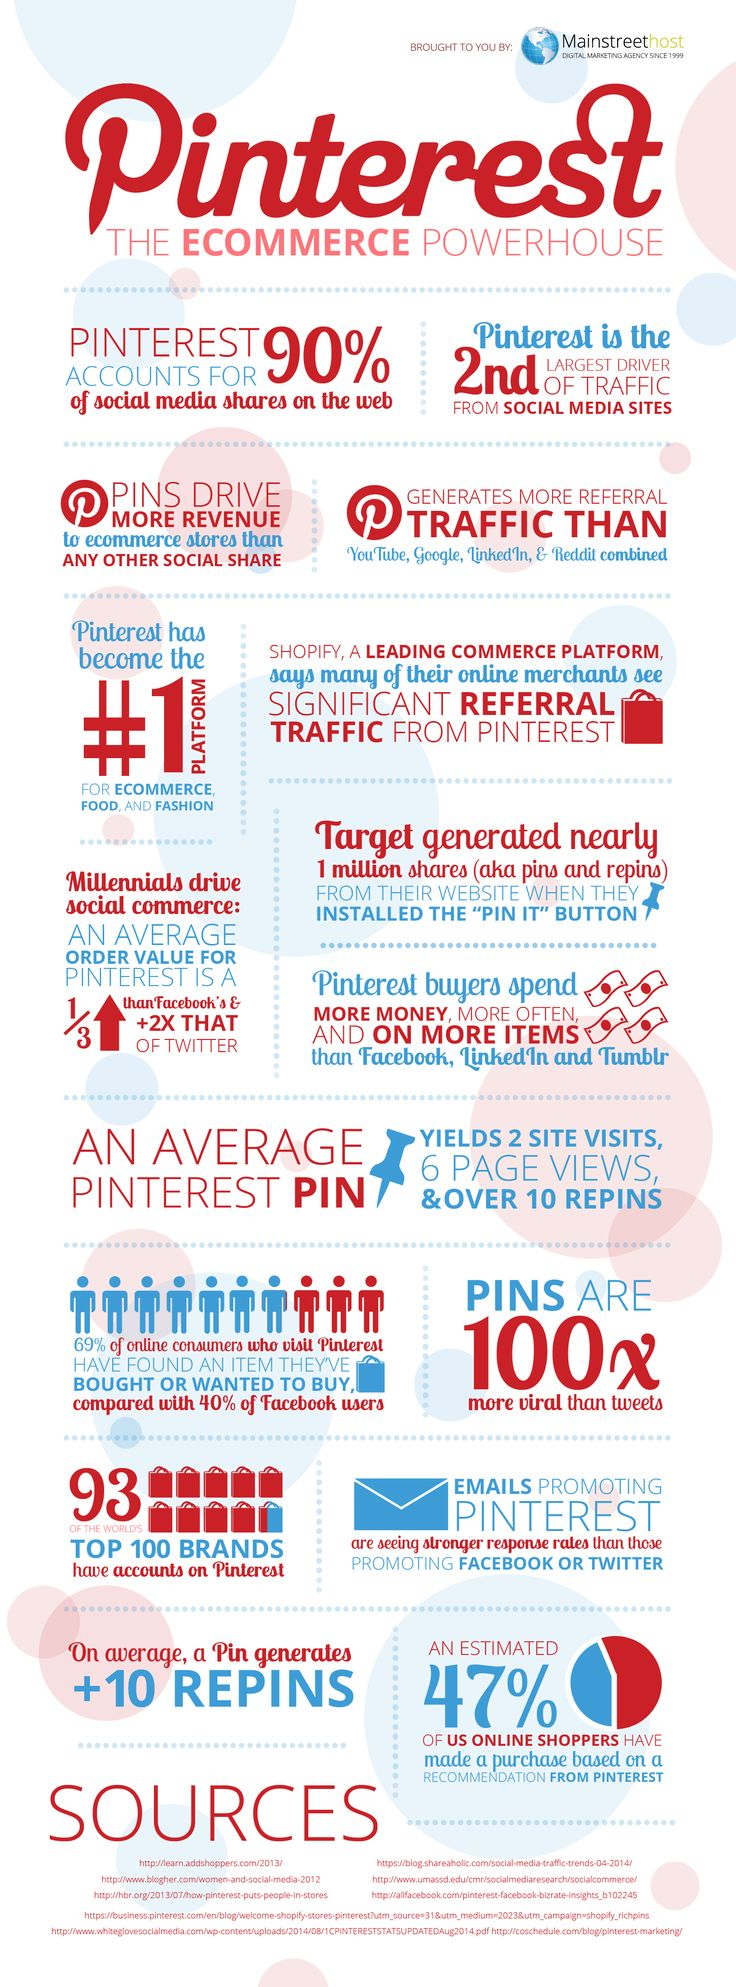 If You Aren't on Pinterest, You Are Losing Sales - @socialmedia2day